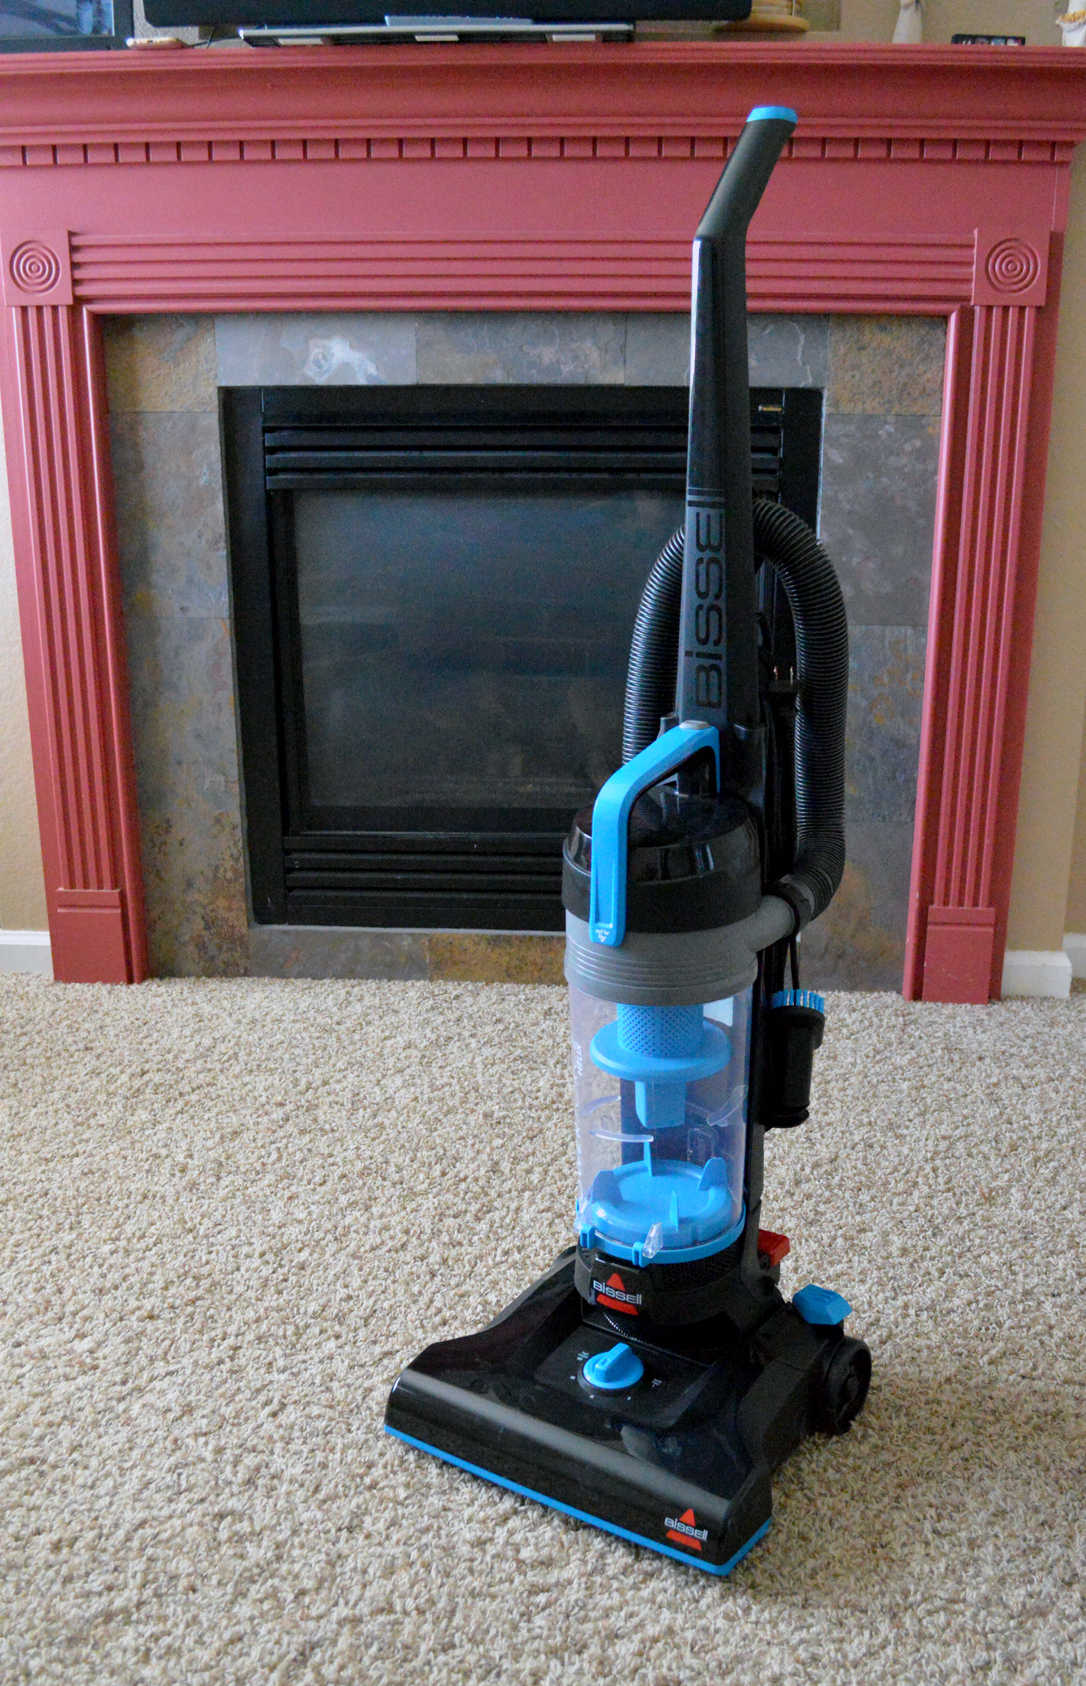 When cleaning work smarter and not harder. Don't let cleaning stress you out or break the bank. + Giveaway